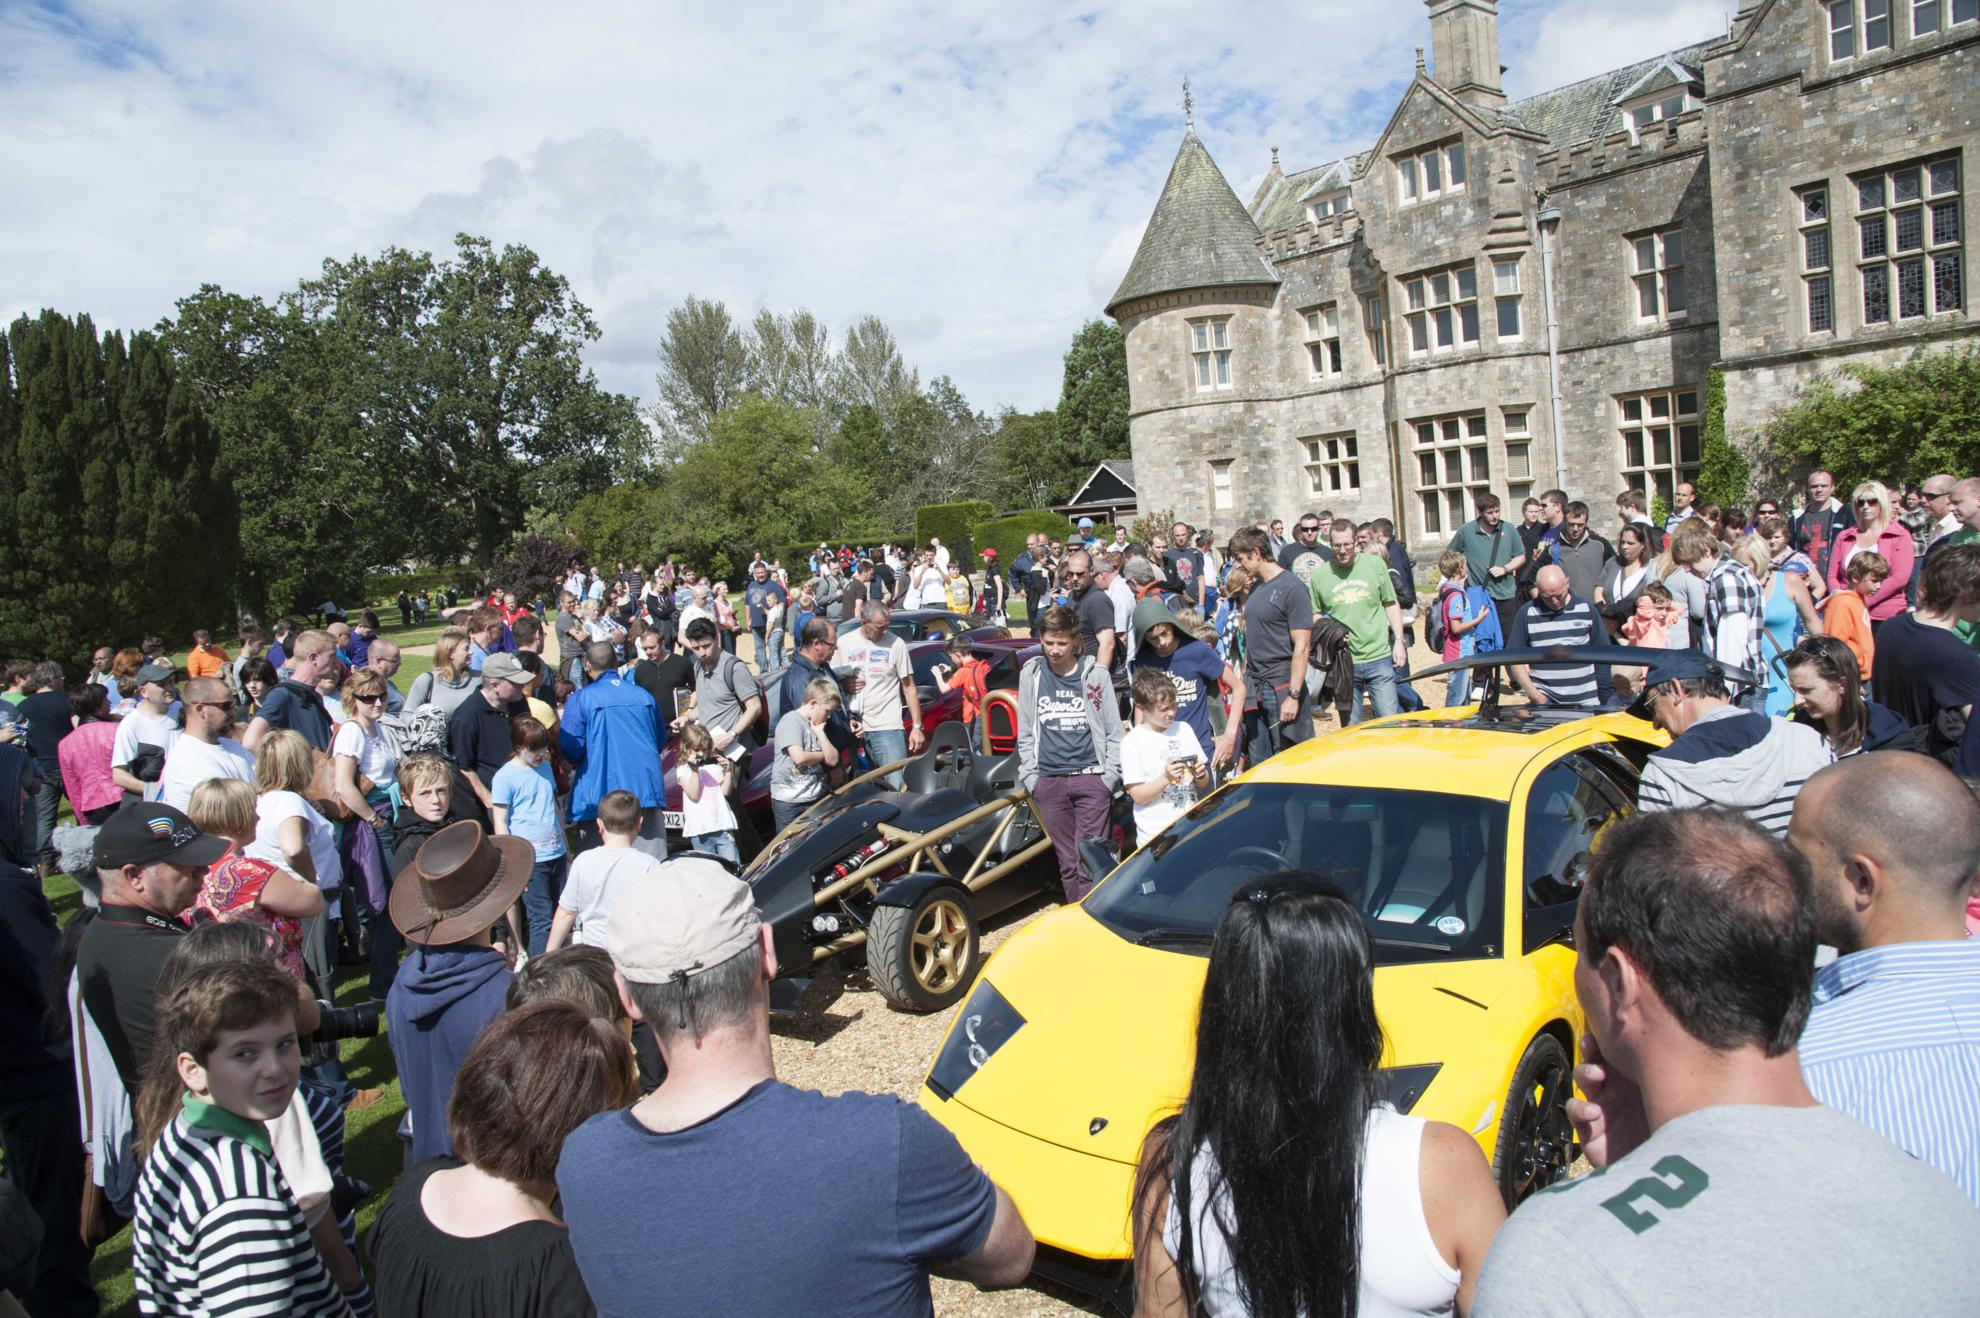 Crowds surround the supercar by Palace House